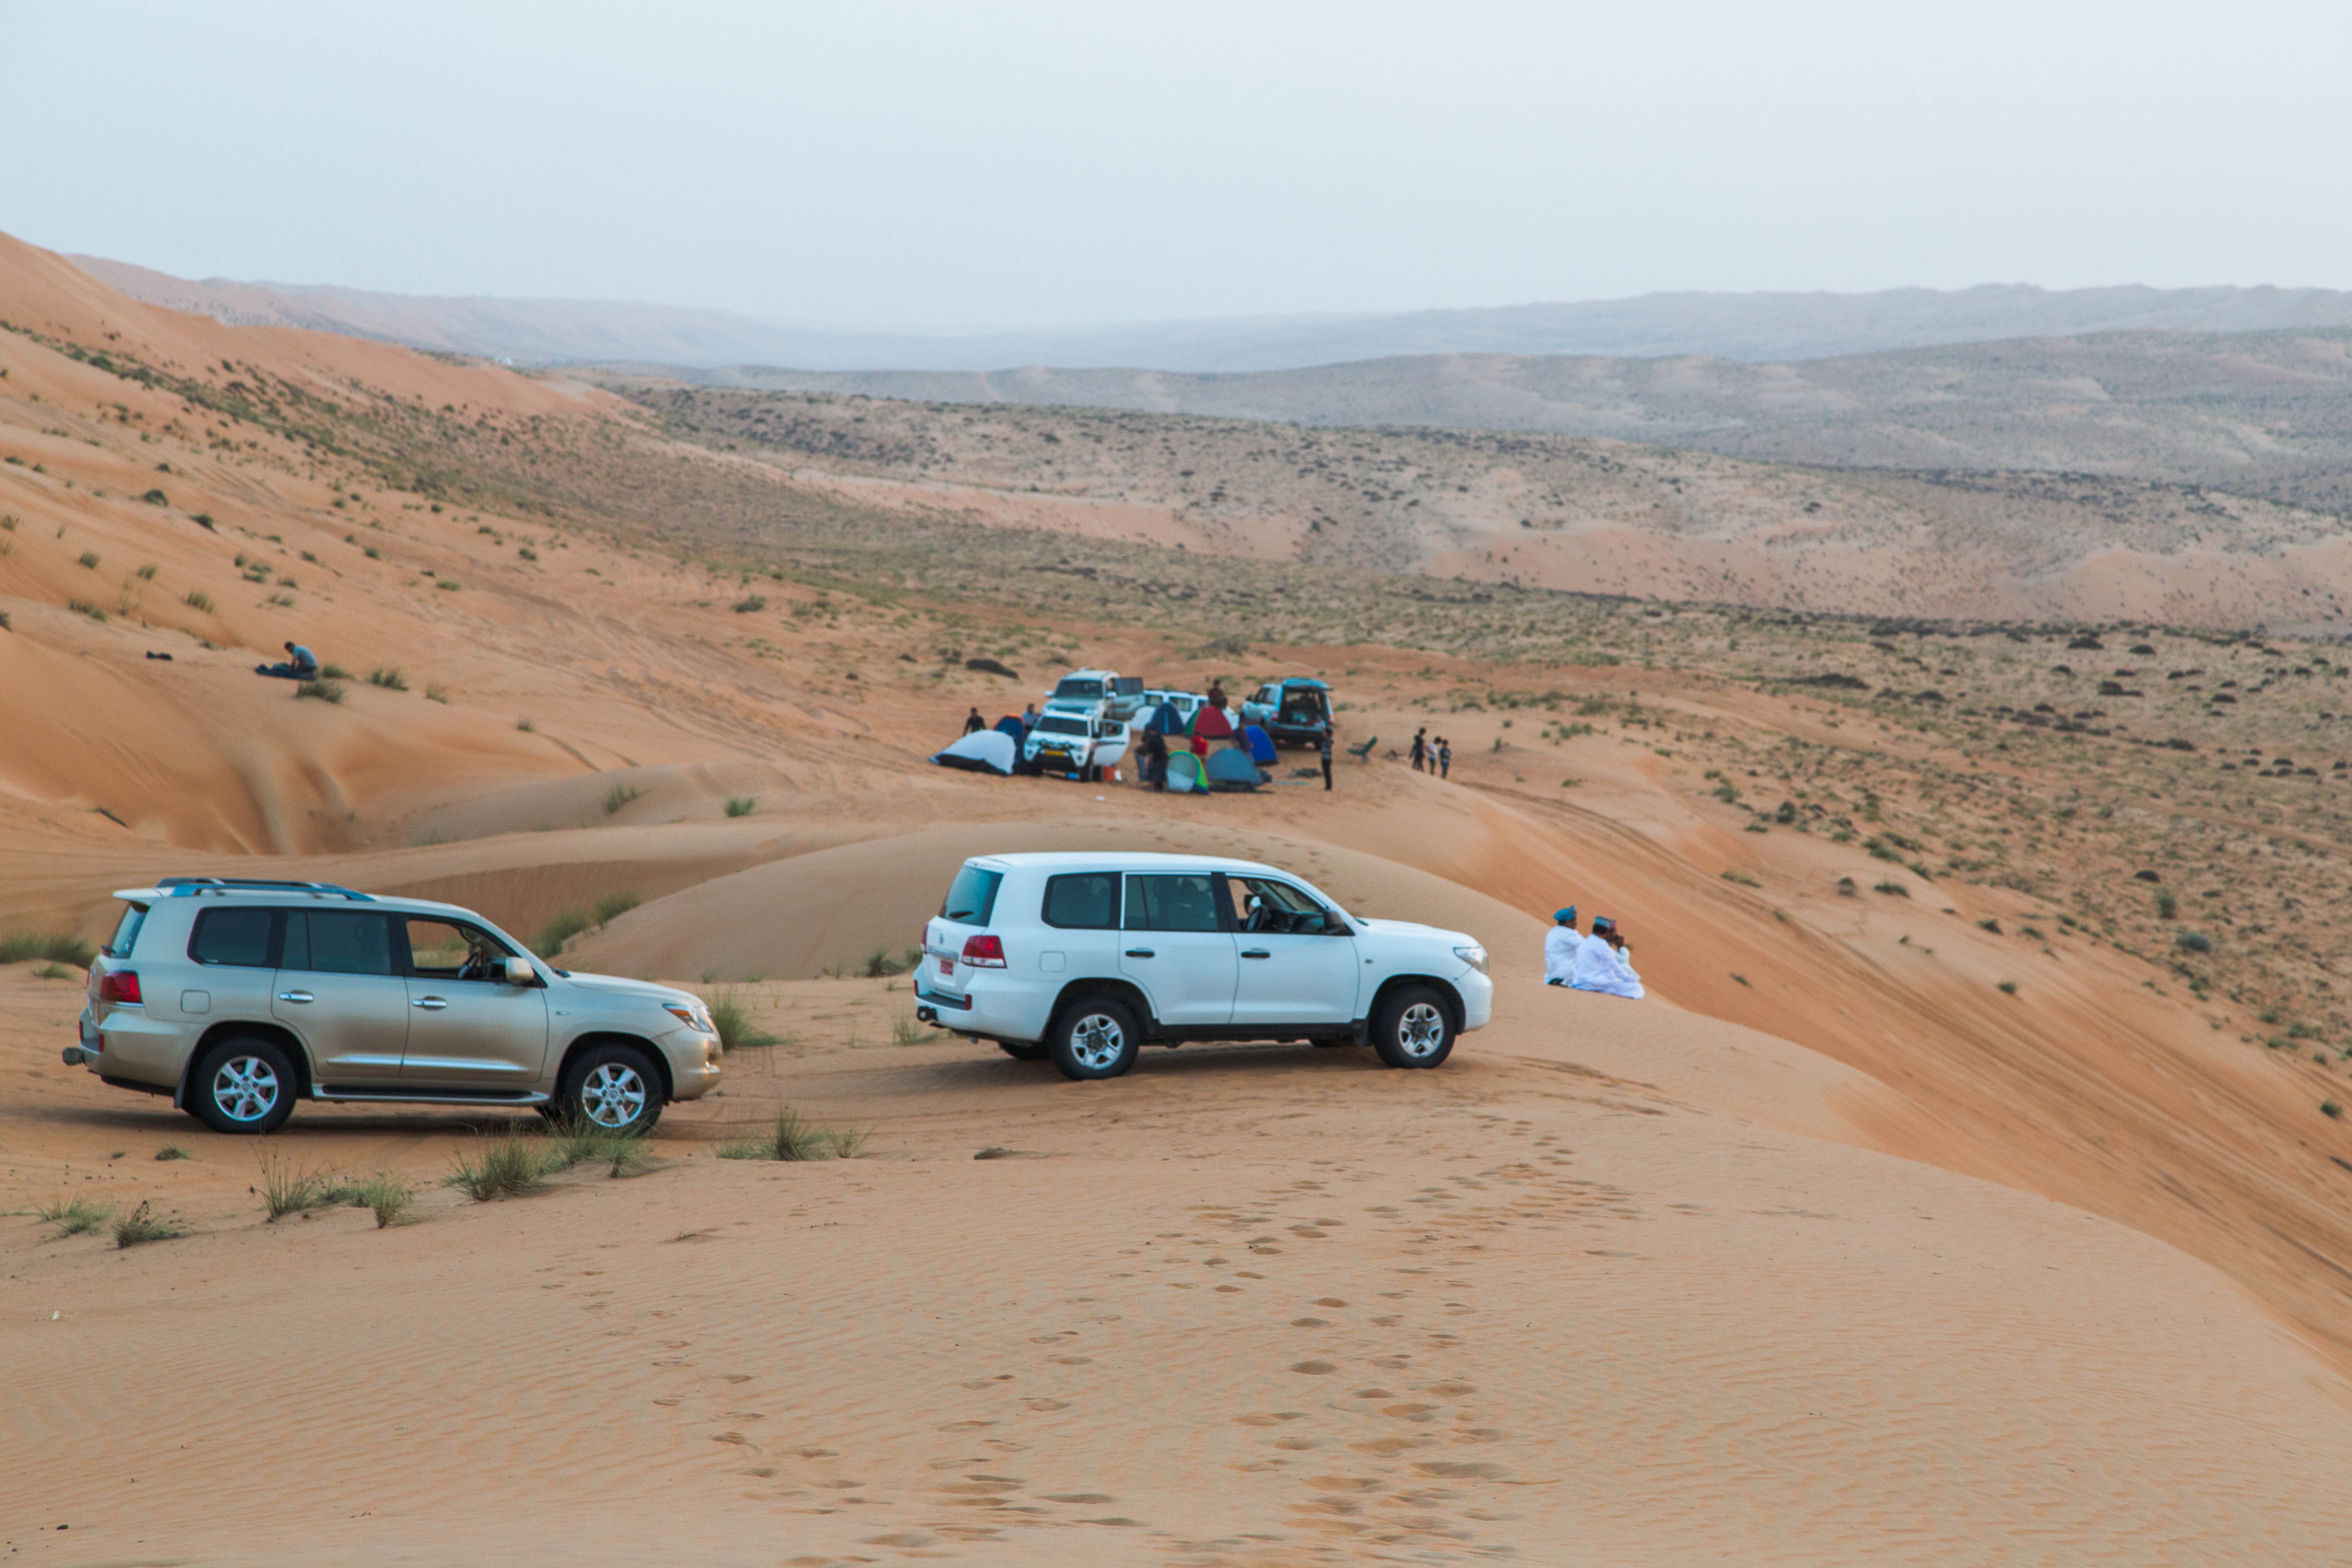 This weekend, get back to nature with Oman's traditional Bedouin life!